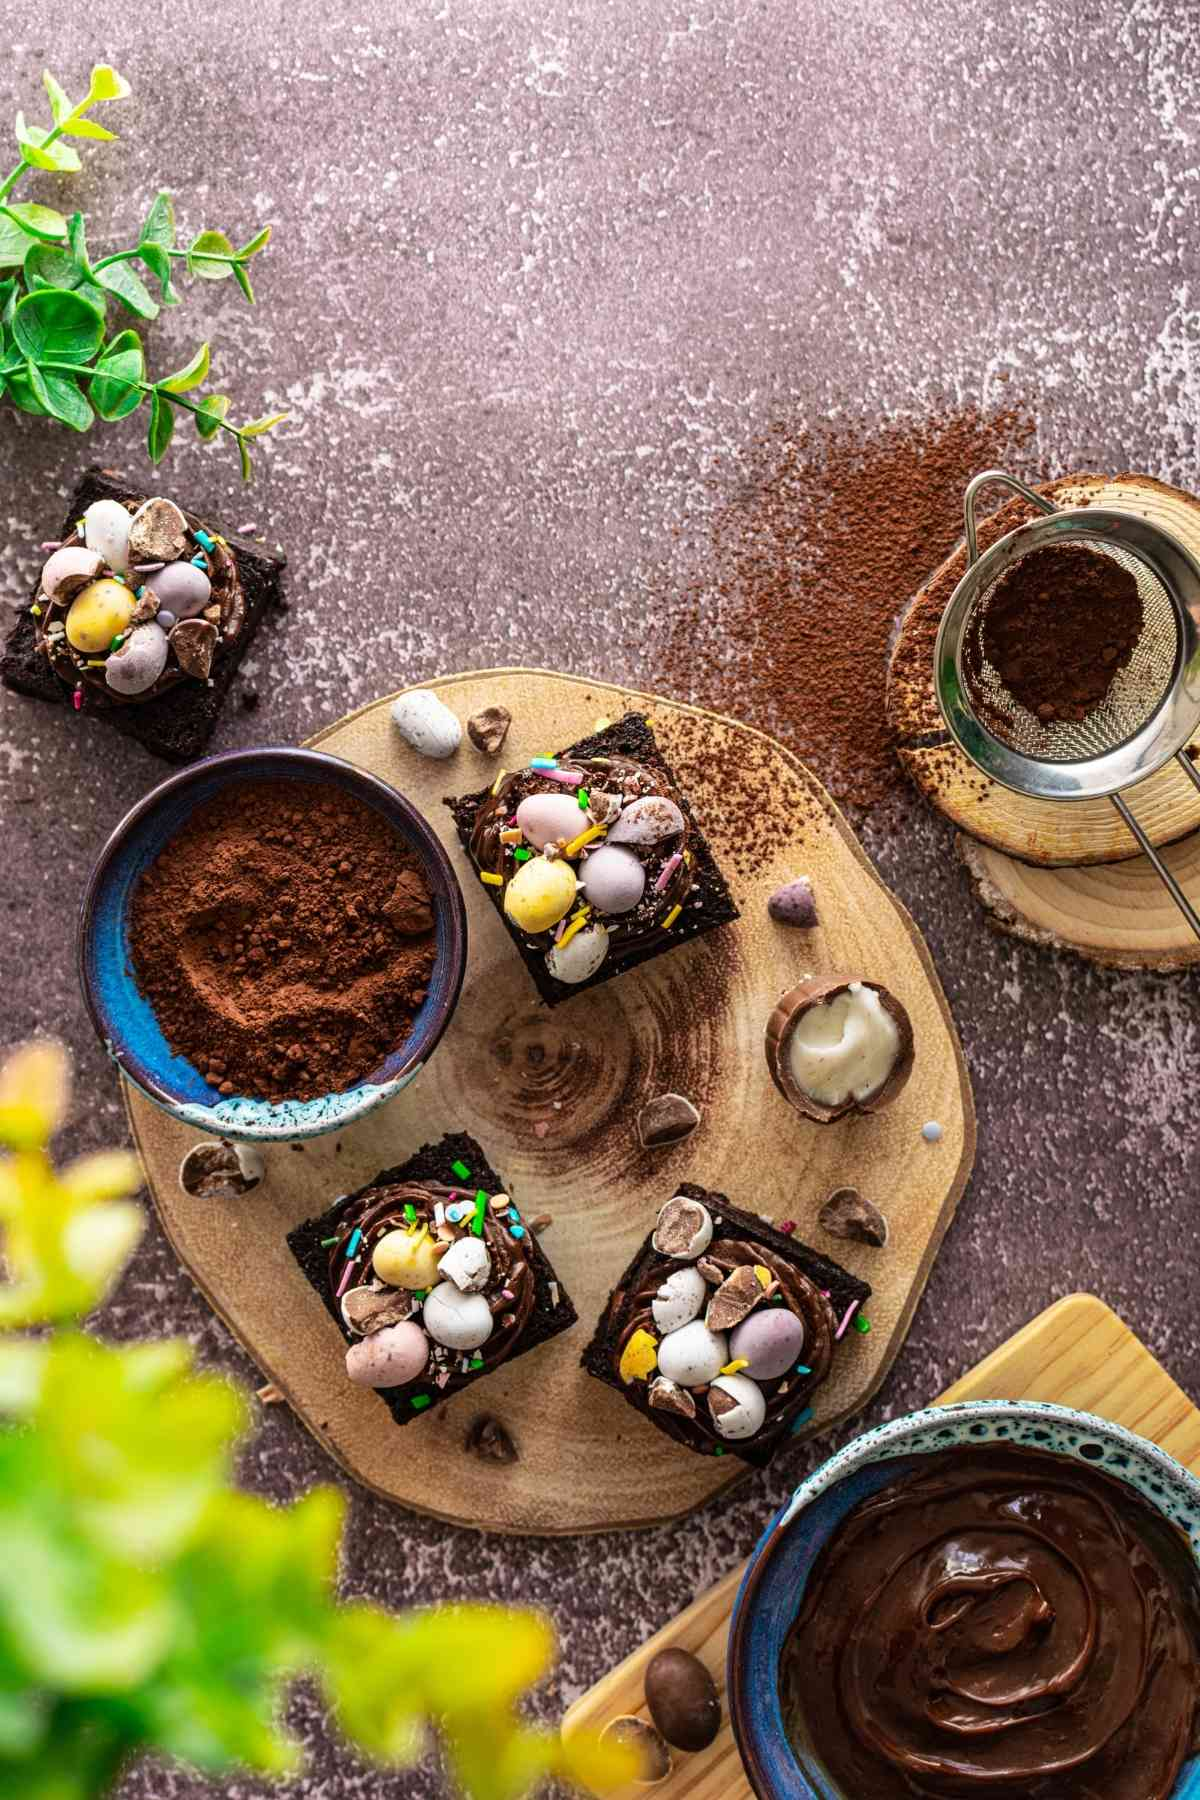 Flatlay of mini egg chocolate brownies on platter with chocolate ganache and cocoa powder